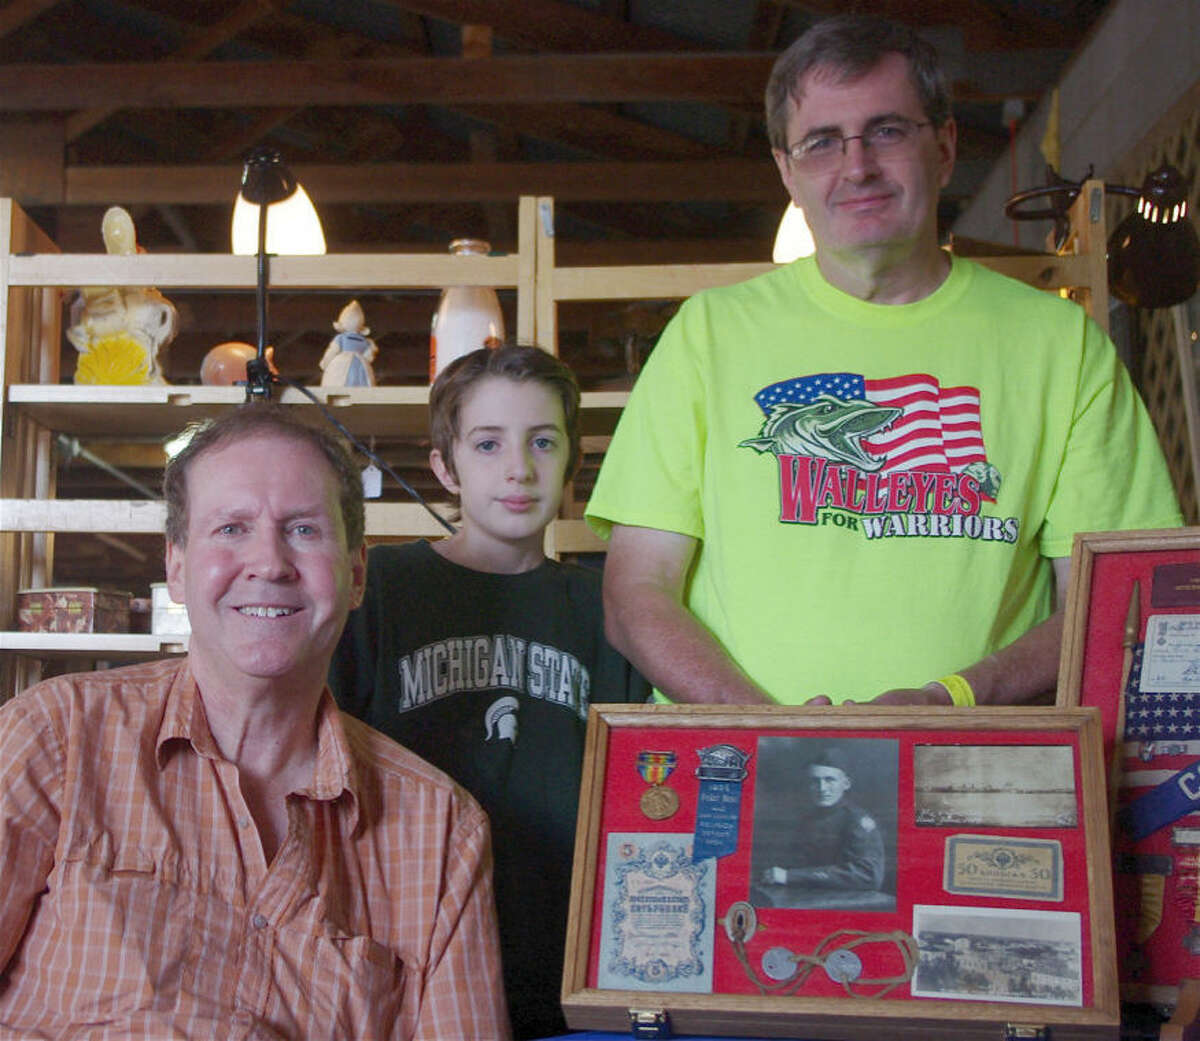 Manning the Michigan Traveling Military Museum's booth at the Michigan Antique and Collectibles Festival recently are (from left) museum director Mel Smith, 12-year-old Charlie Ray, and his father, museum president Charles E. Ray. In the foreground is a display case holding photographs and other items associated with the service of Pvt. Edward A. Harris of Essexville. He kept a diary while in an American unit known as the Polar Bears, who fought Bolsheviks in Russia. Charles E. Ray is Harris' grandson.